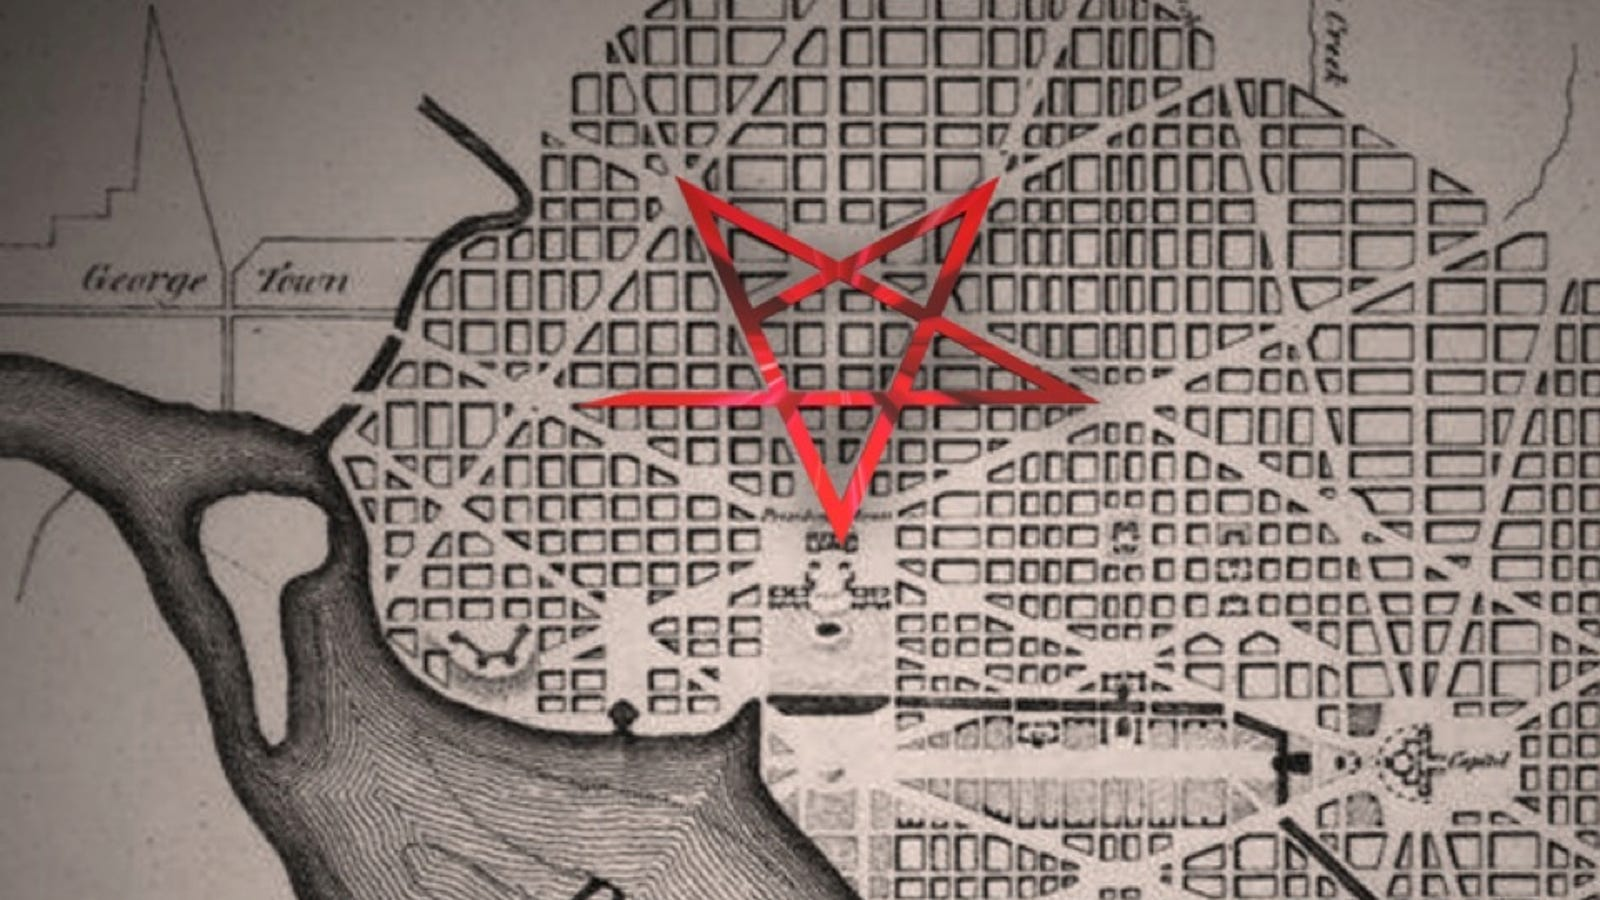 Are the streets of Washington, D C  supposed to form a pentagram?